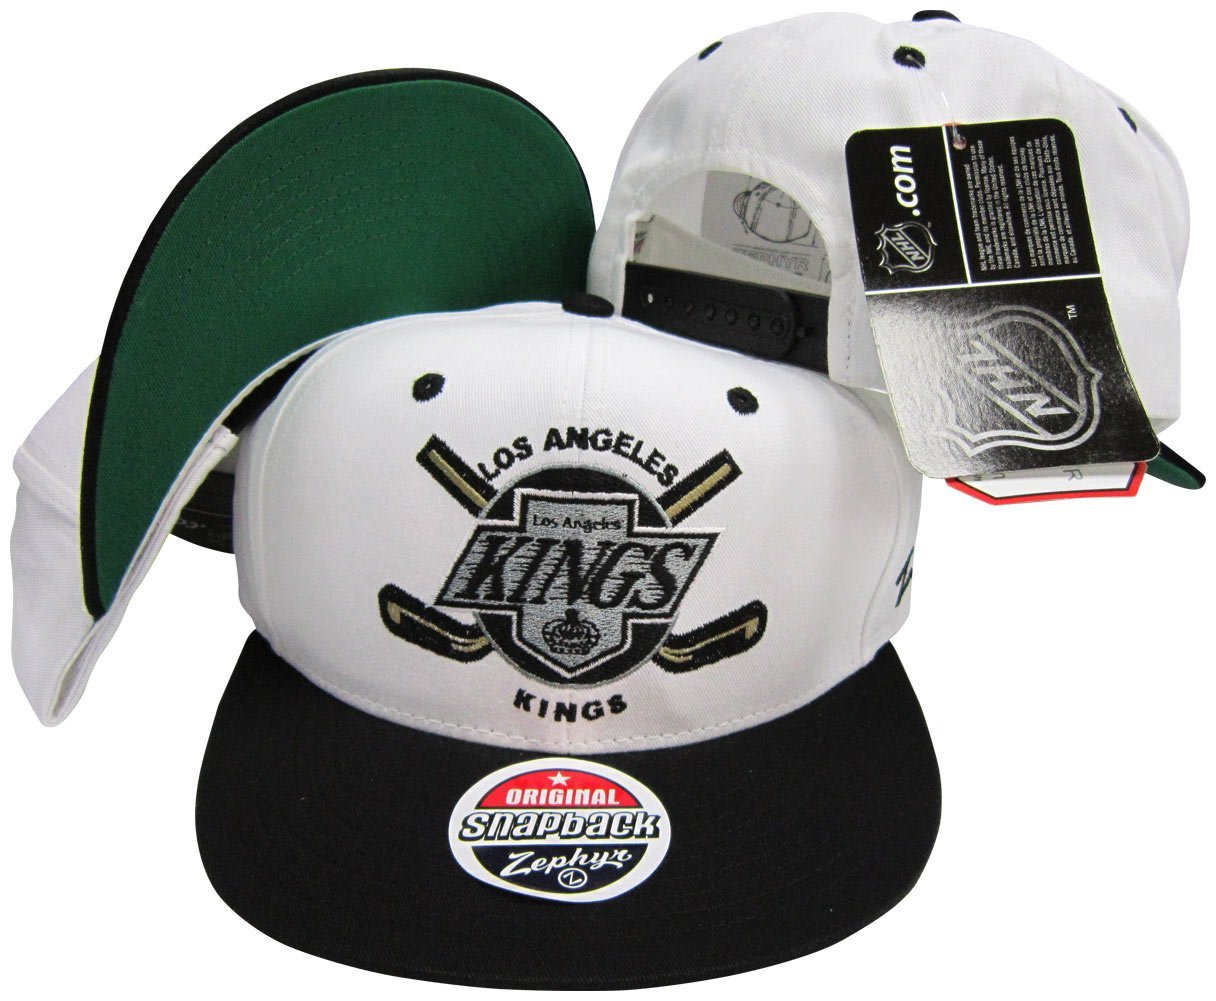 Los Angeles Kings White   Black Two Tone Plastic Snapback Adjustable  Plastic Snap Back Hat   Cap c8909984c